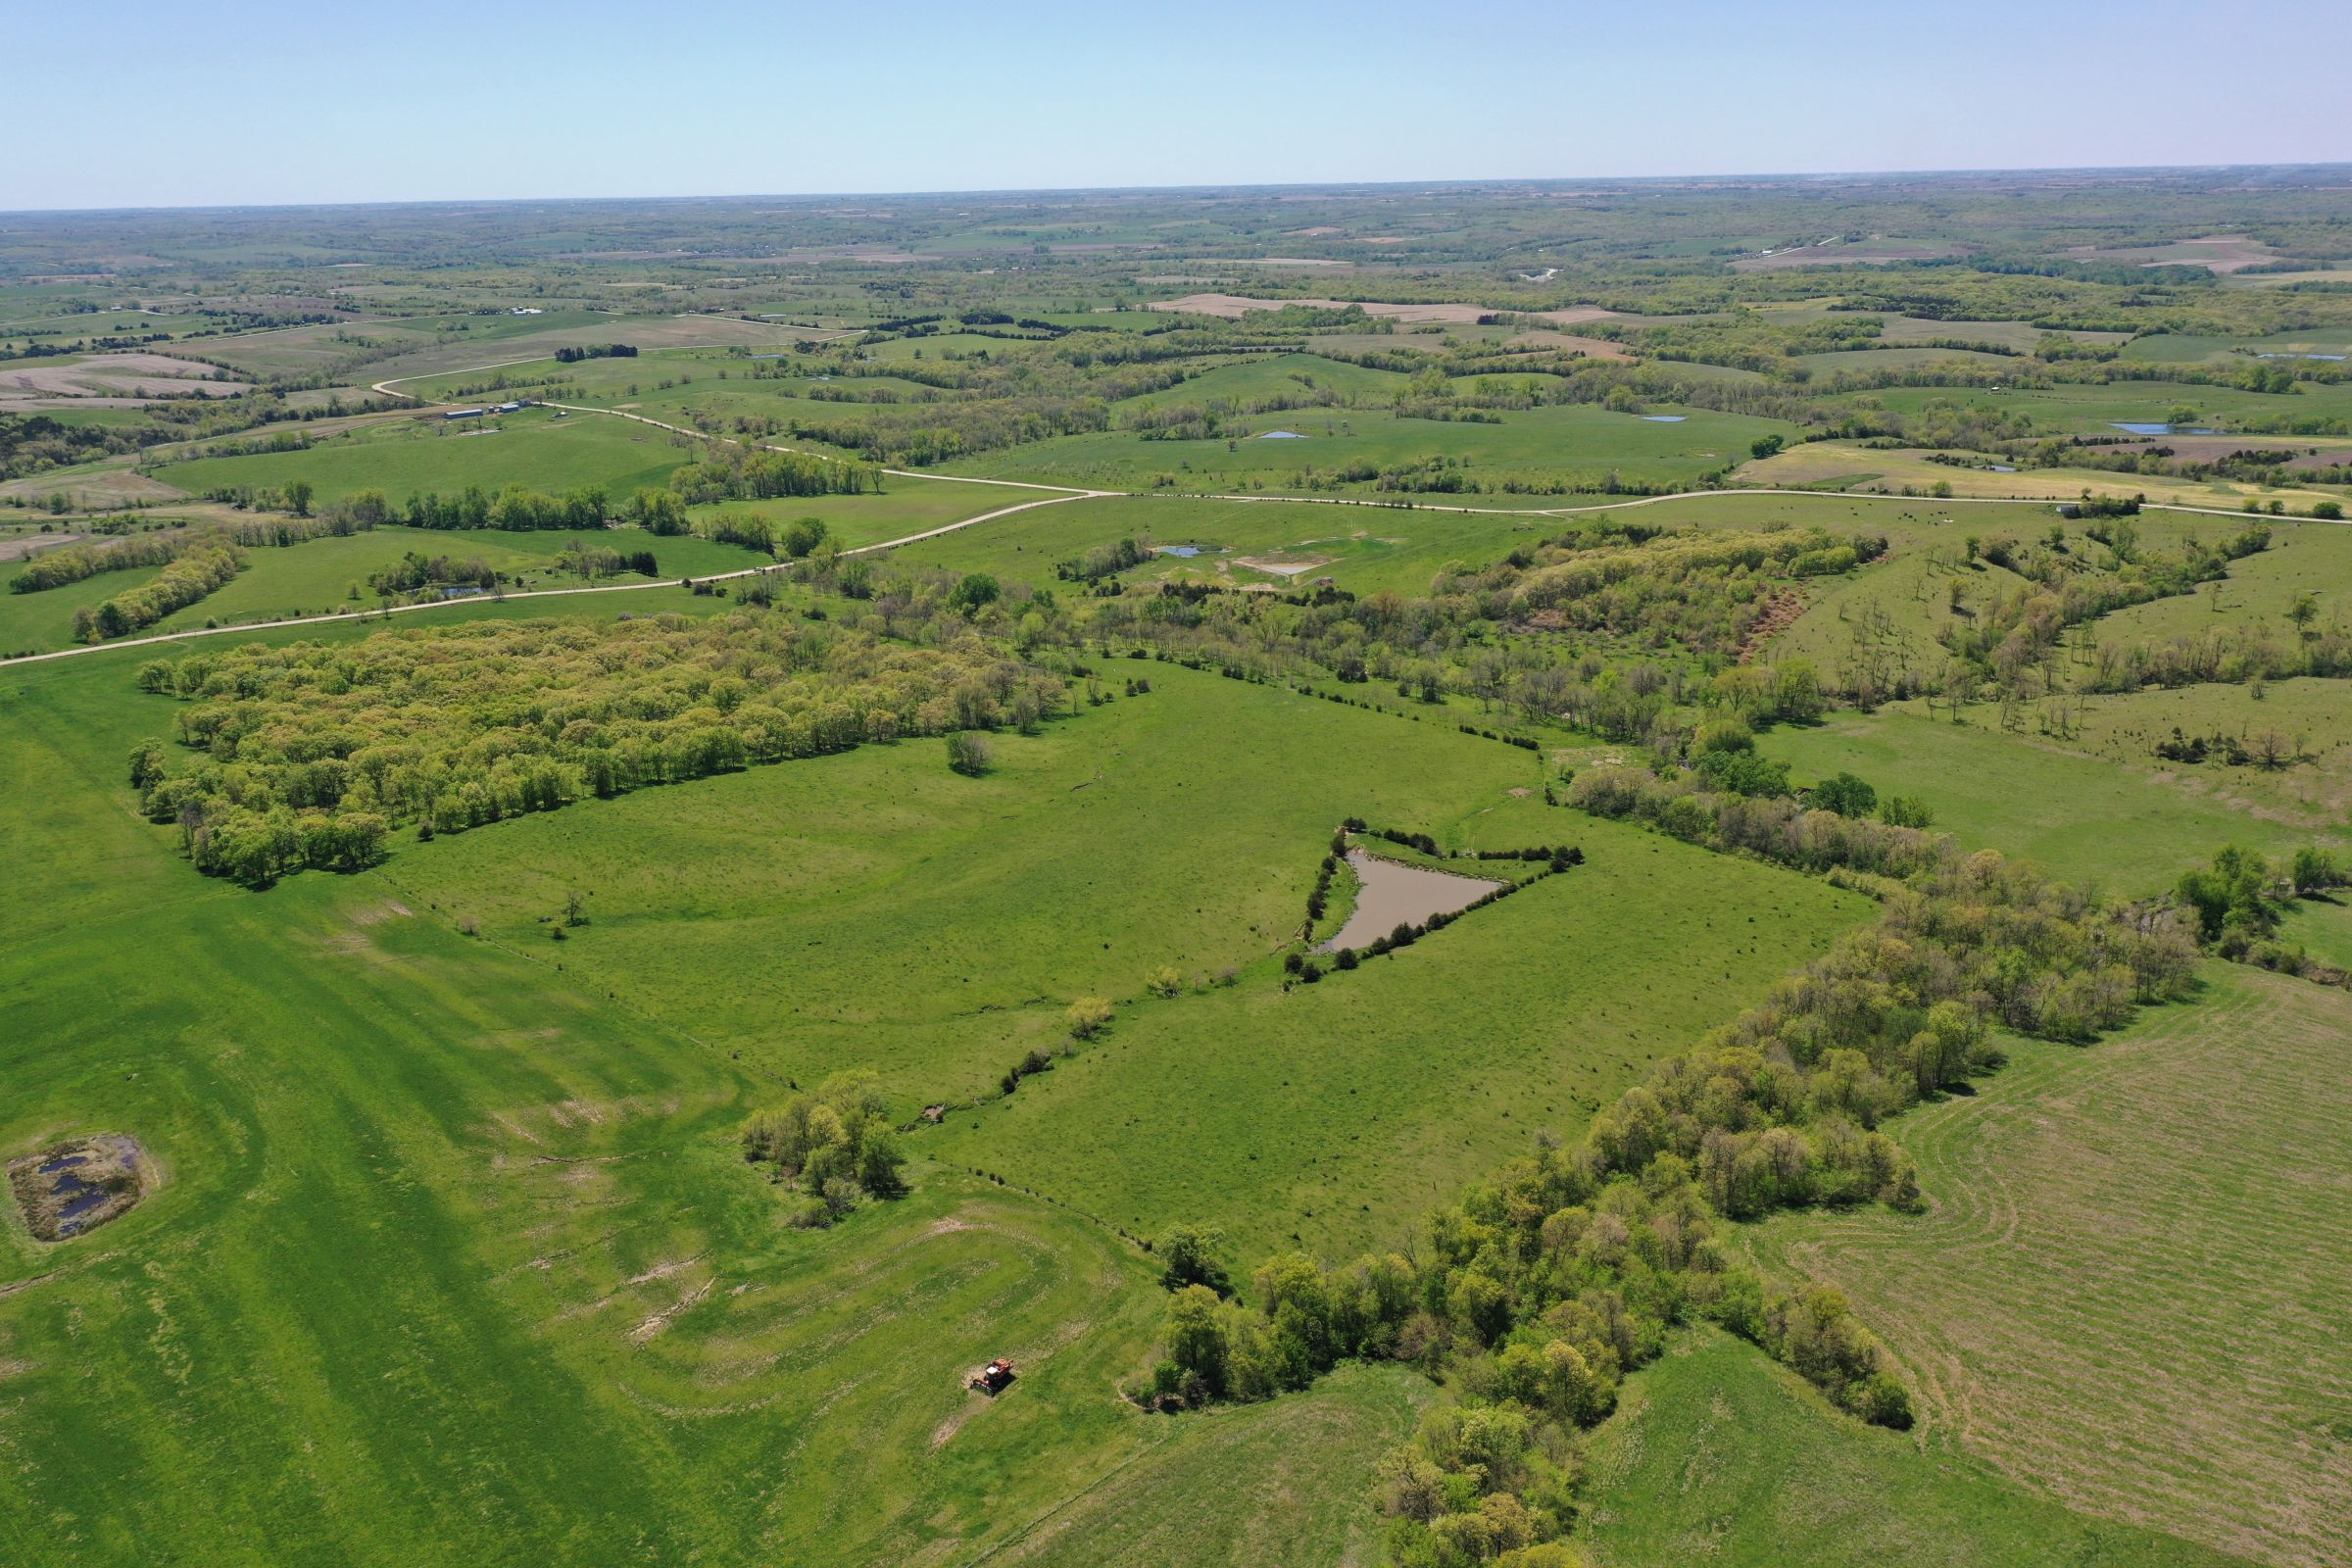 land-decatur-county-iowa-99-acres-listing-number-15525-2-2021-05-14-171816.JPG